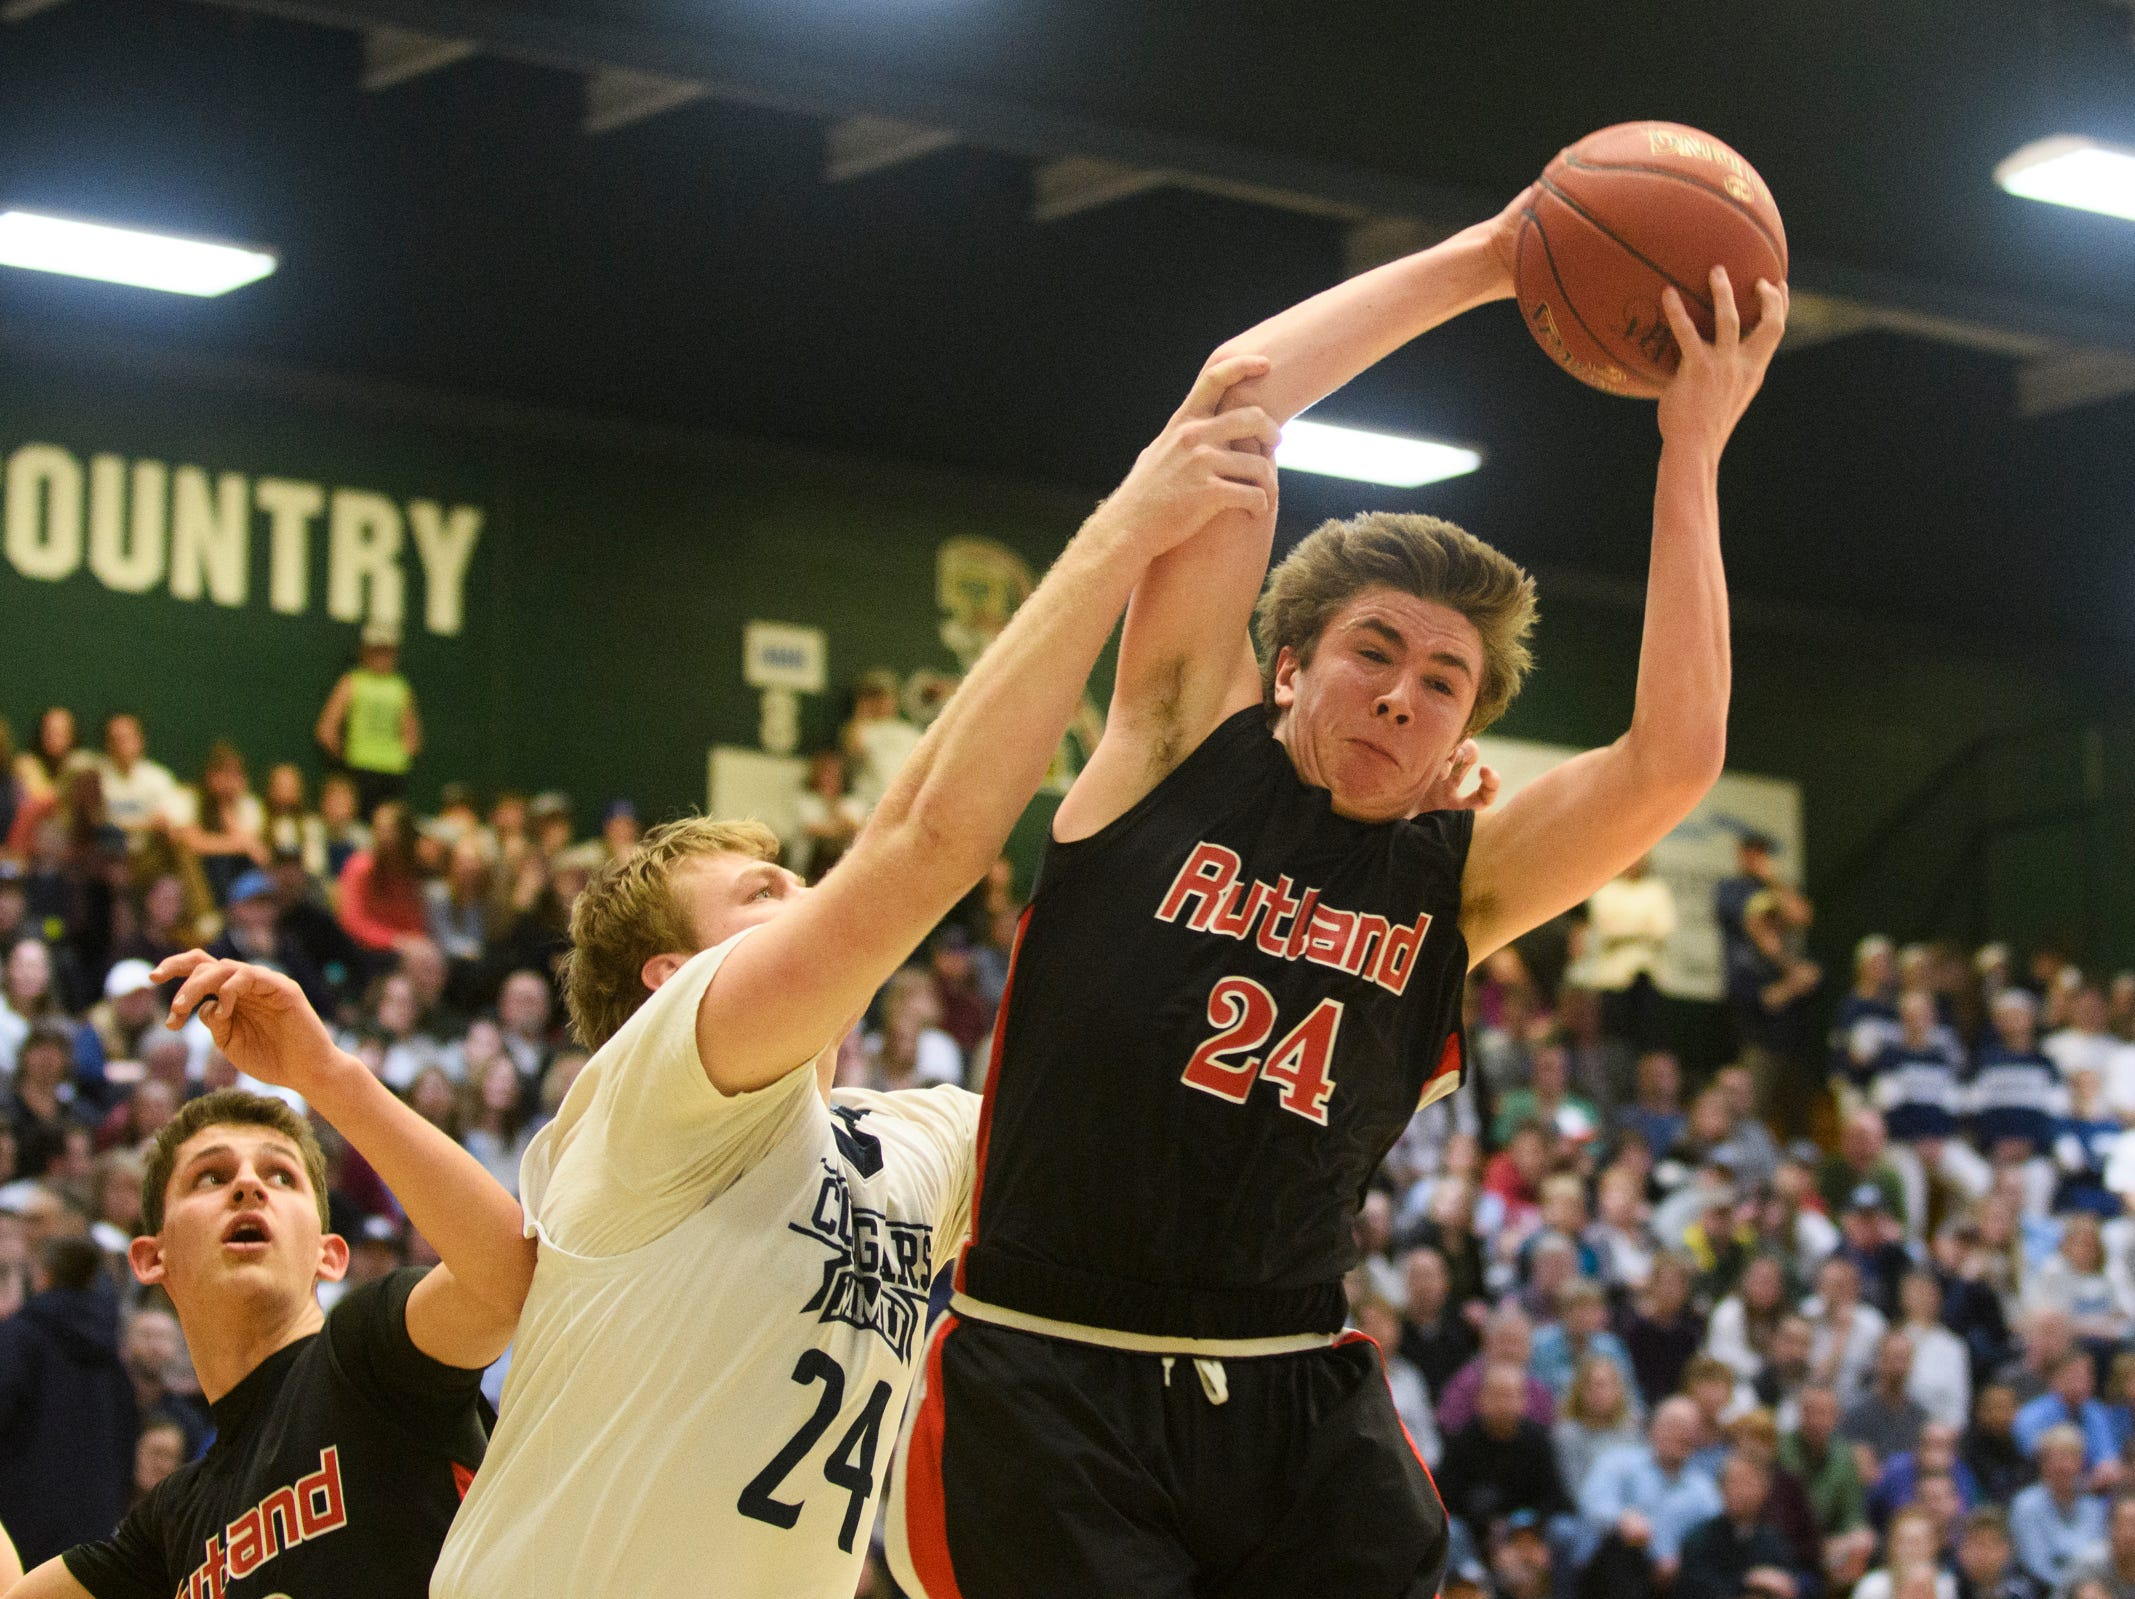 Rutland's Jacob Lorman (24) leaps to grab the rebound during the boys DI semi final basketball game between the Rutland Raiders and the Mount Mansfield Cougars at Patrick Gym on Monday night March 11, 2019 in Burlington, Vermont.